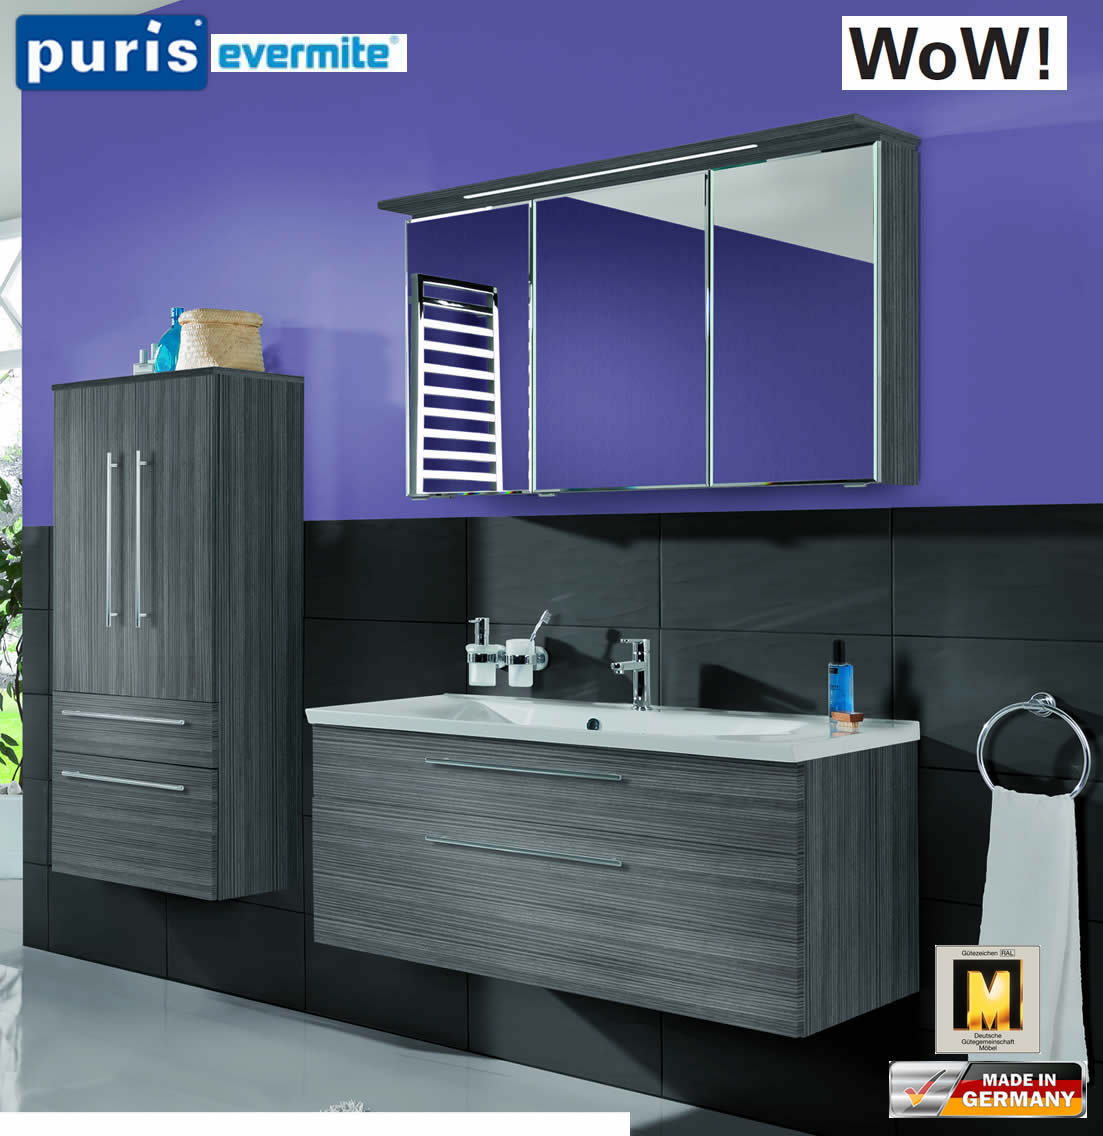 Puris WoW Badmöbel Set 110 cm in Hacienda Grau - 3tlg - mit EVERMITE ...